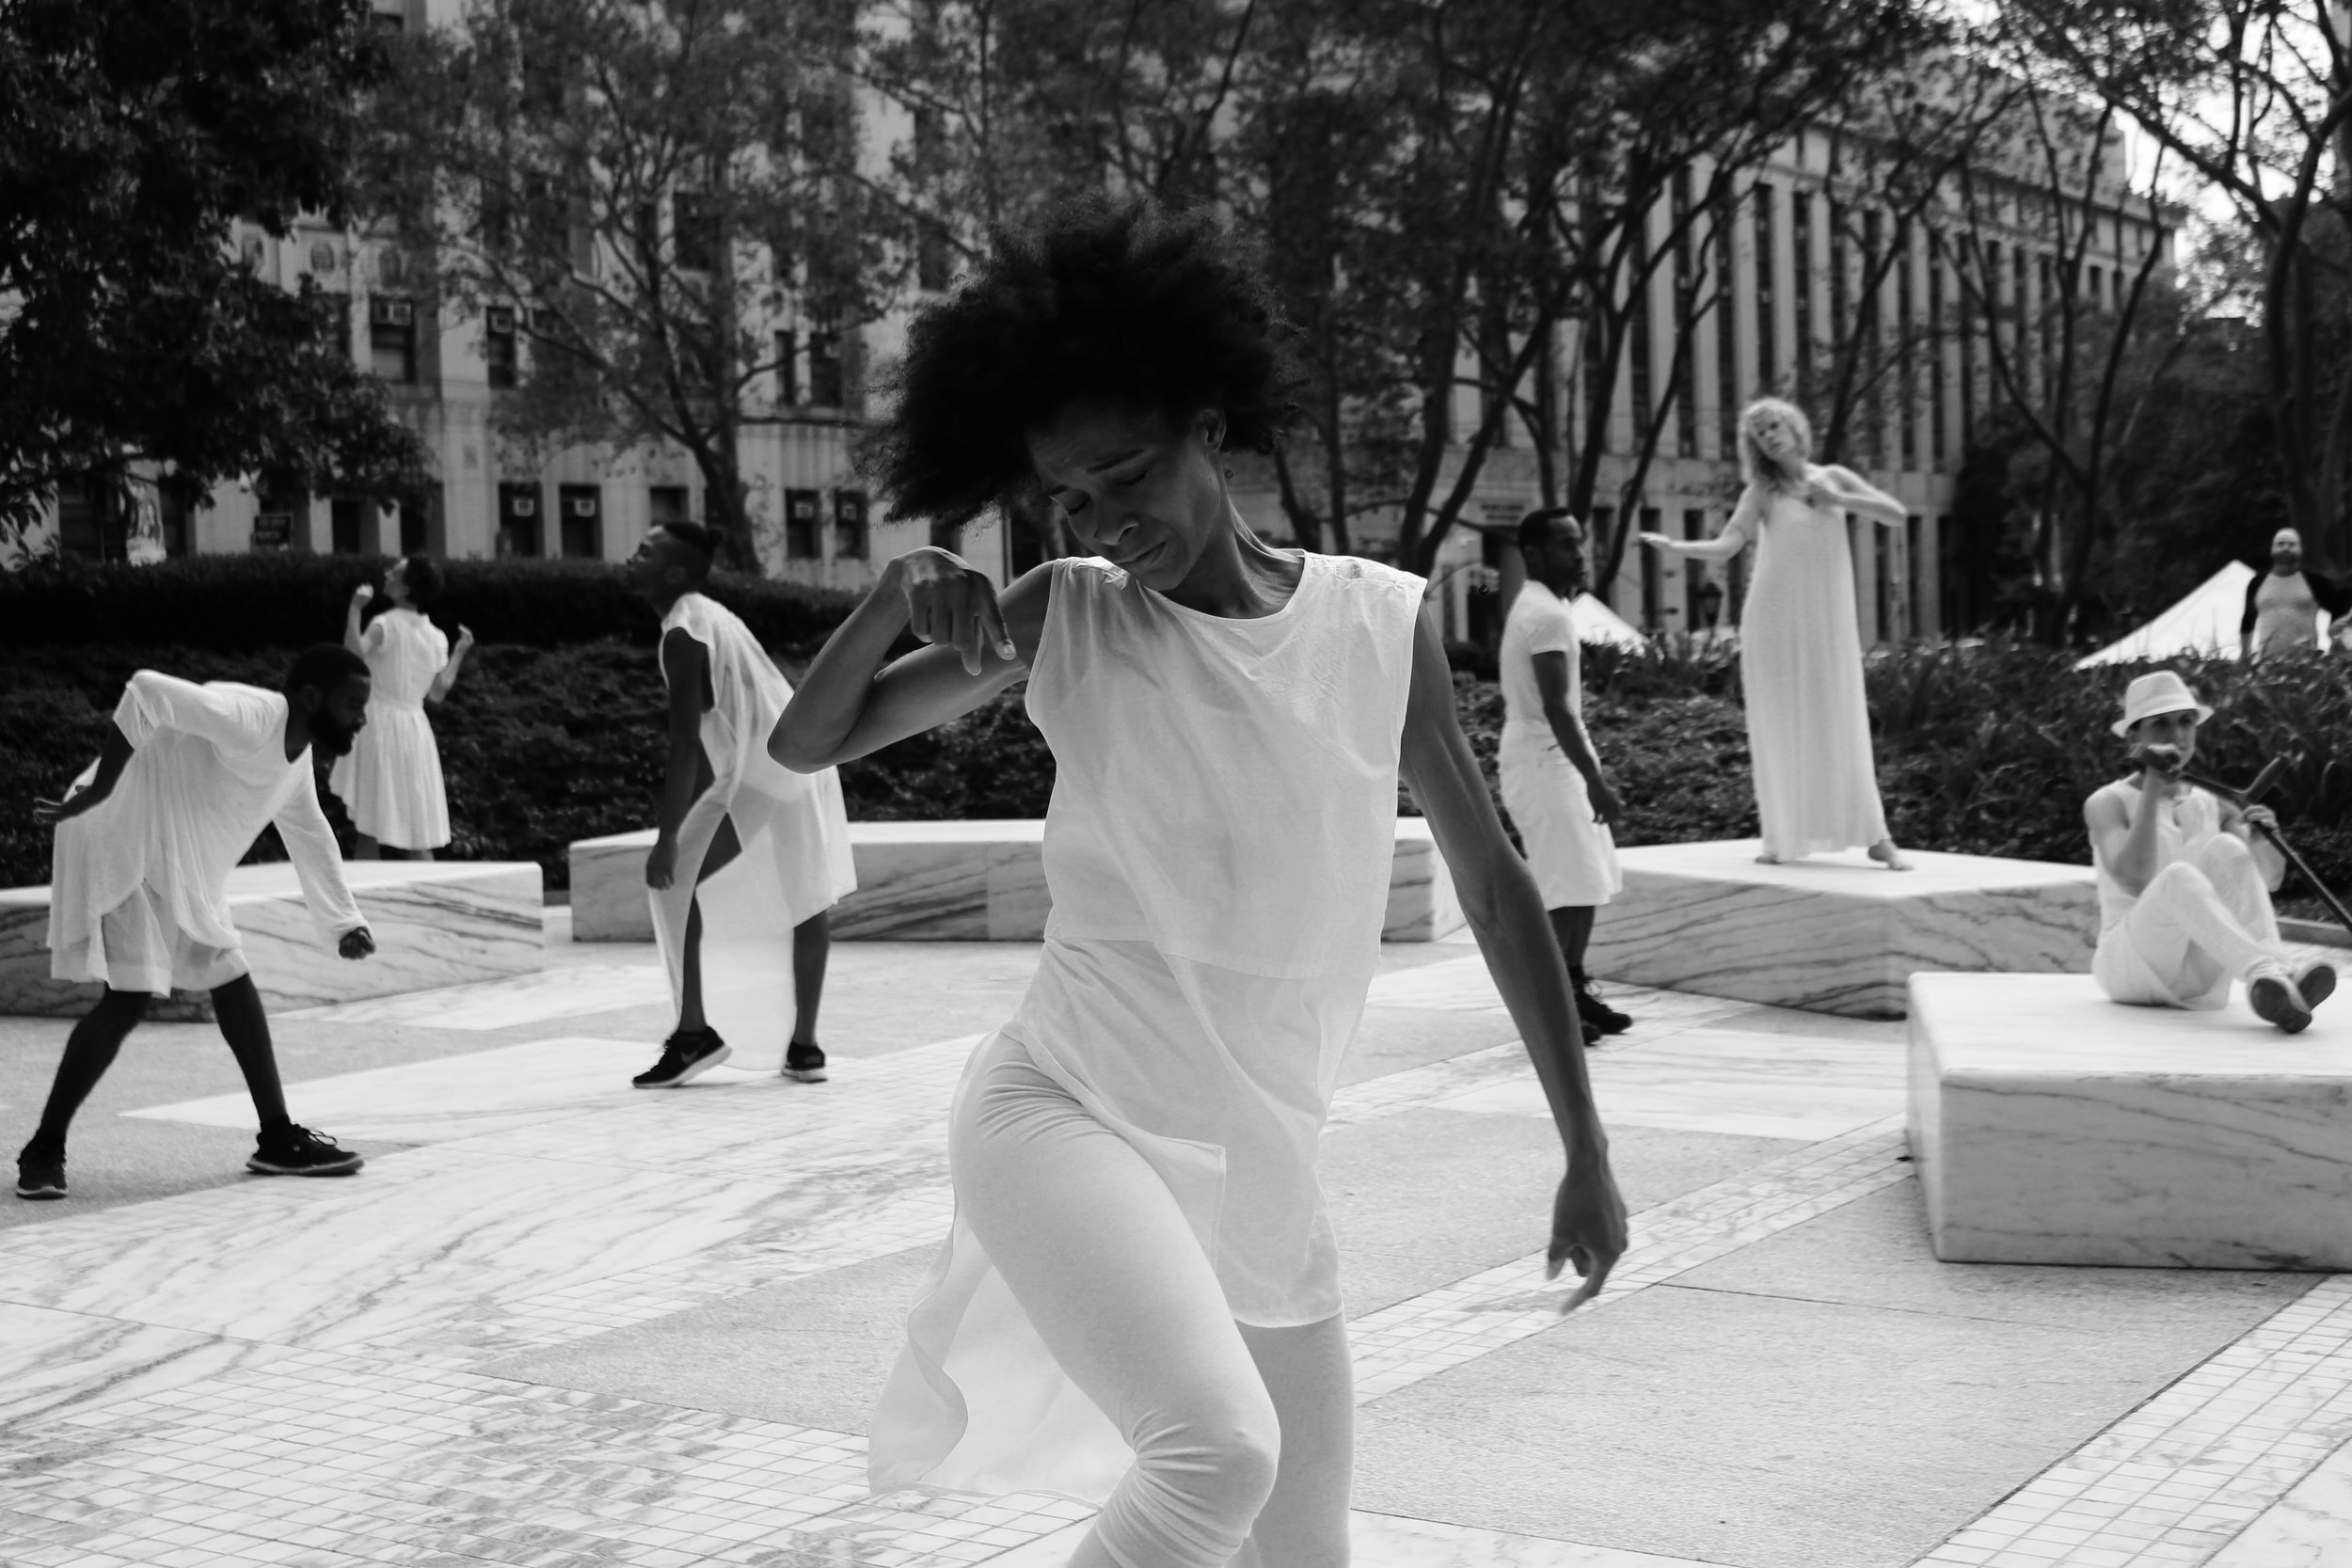 a group of dancers in white in an open courtyard as sculptures